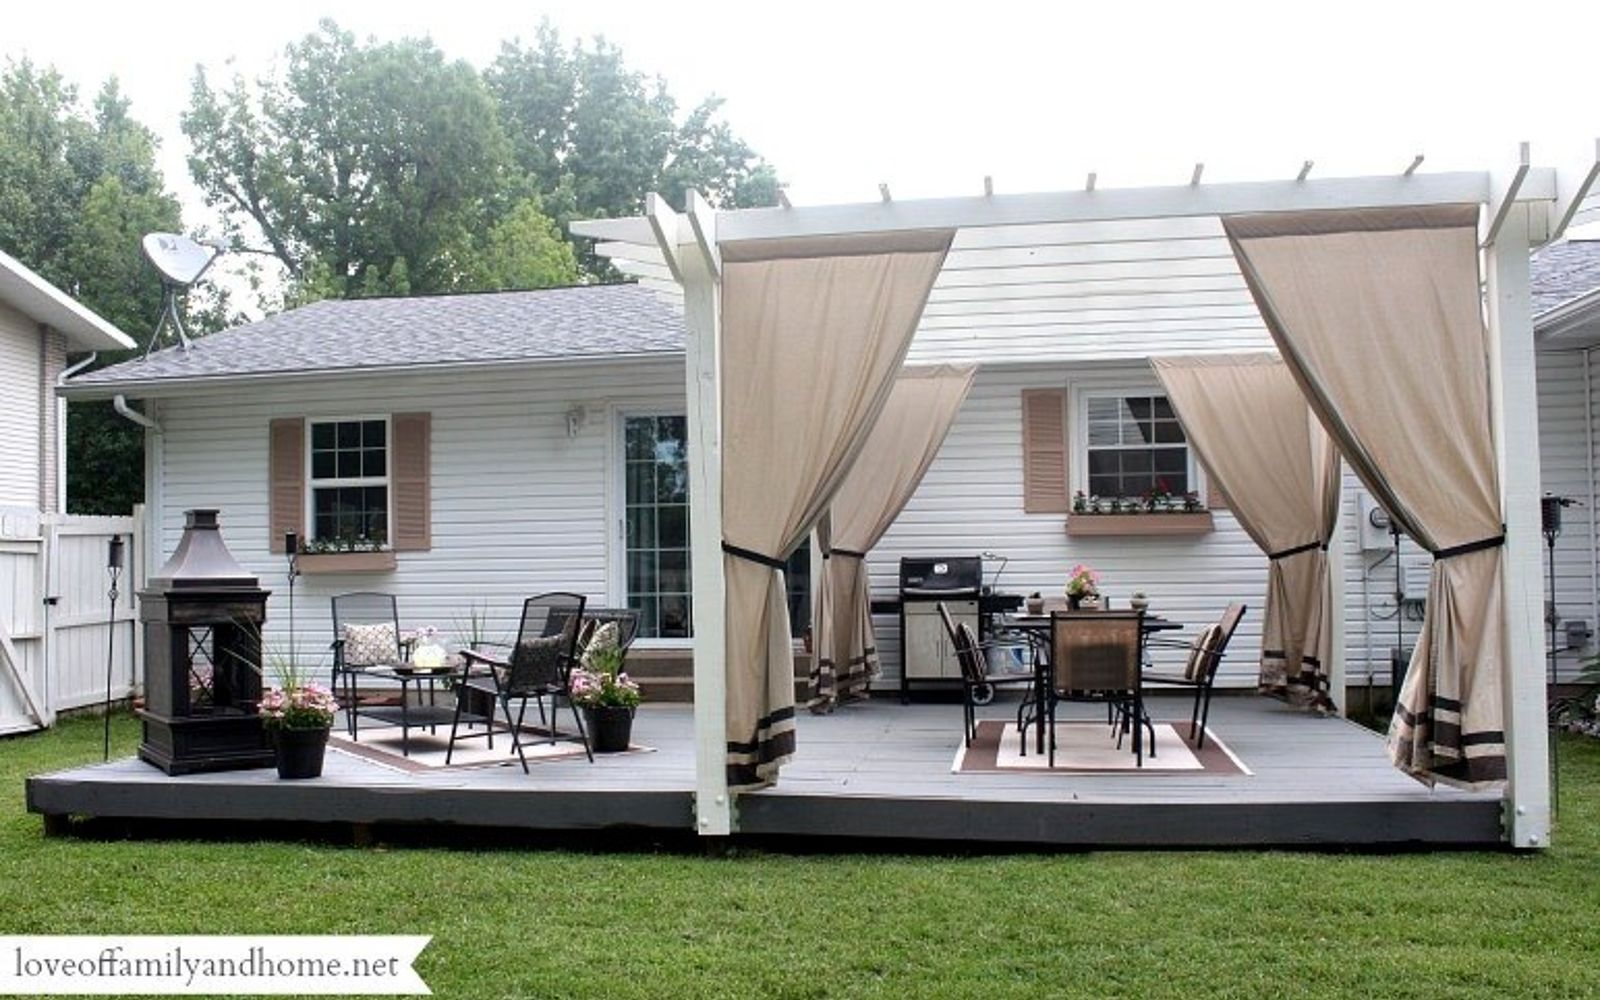 s 11 tips tricks for making your diy deck look amazing, decks, Put up a pergola to make a shady corner